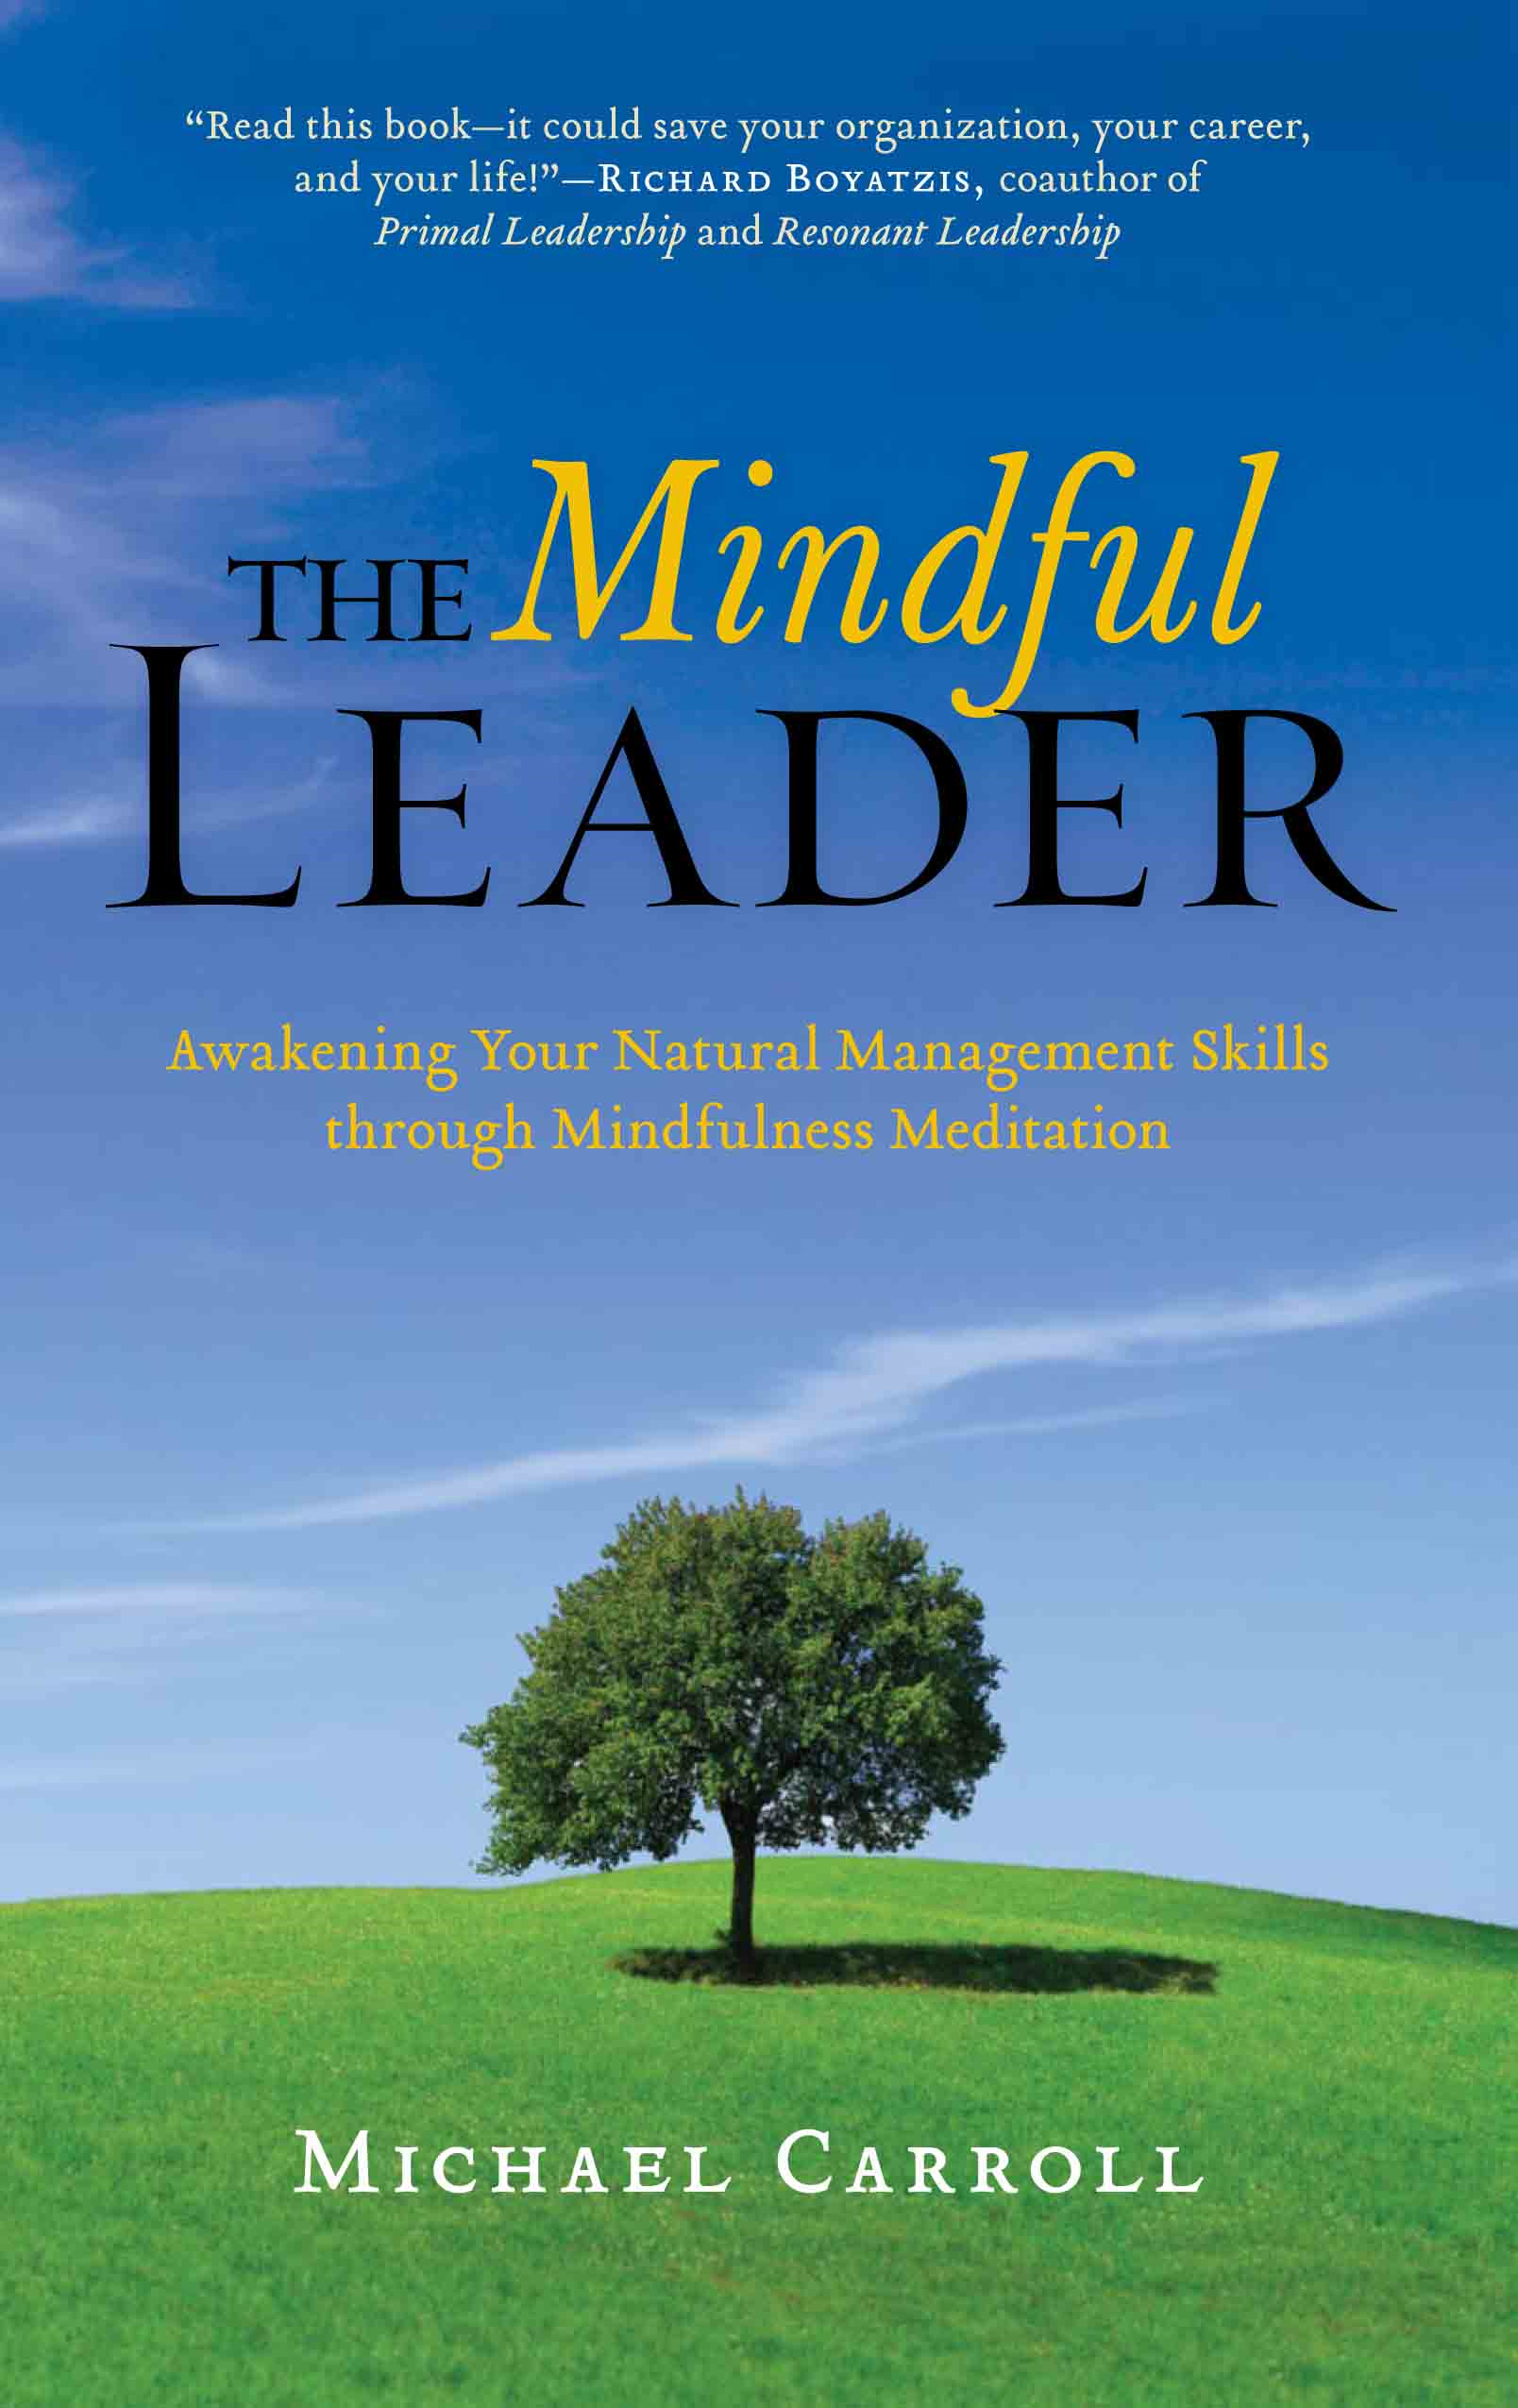 The Mindful Leader: Awakening Your Natural Management Skills through Mindfulness Meditation By: Michael Carroll